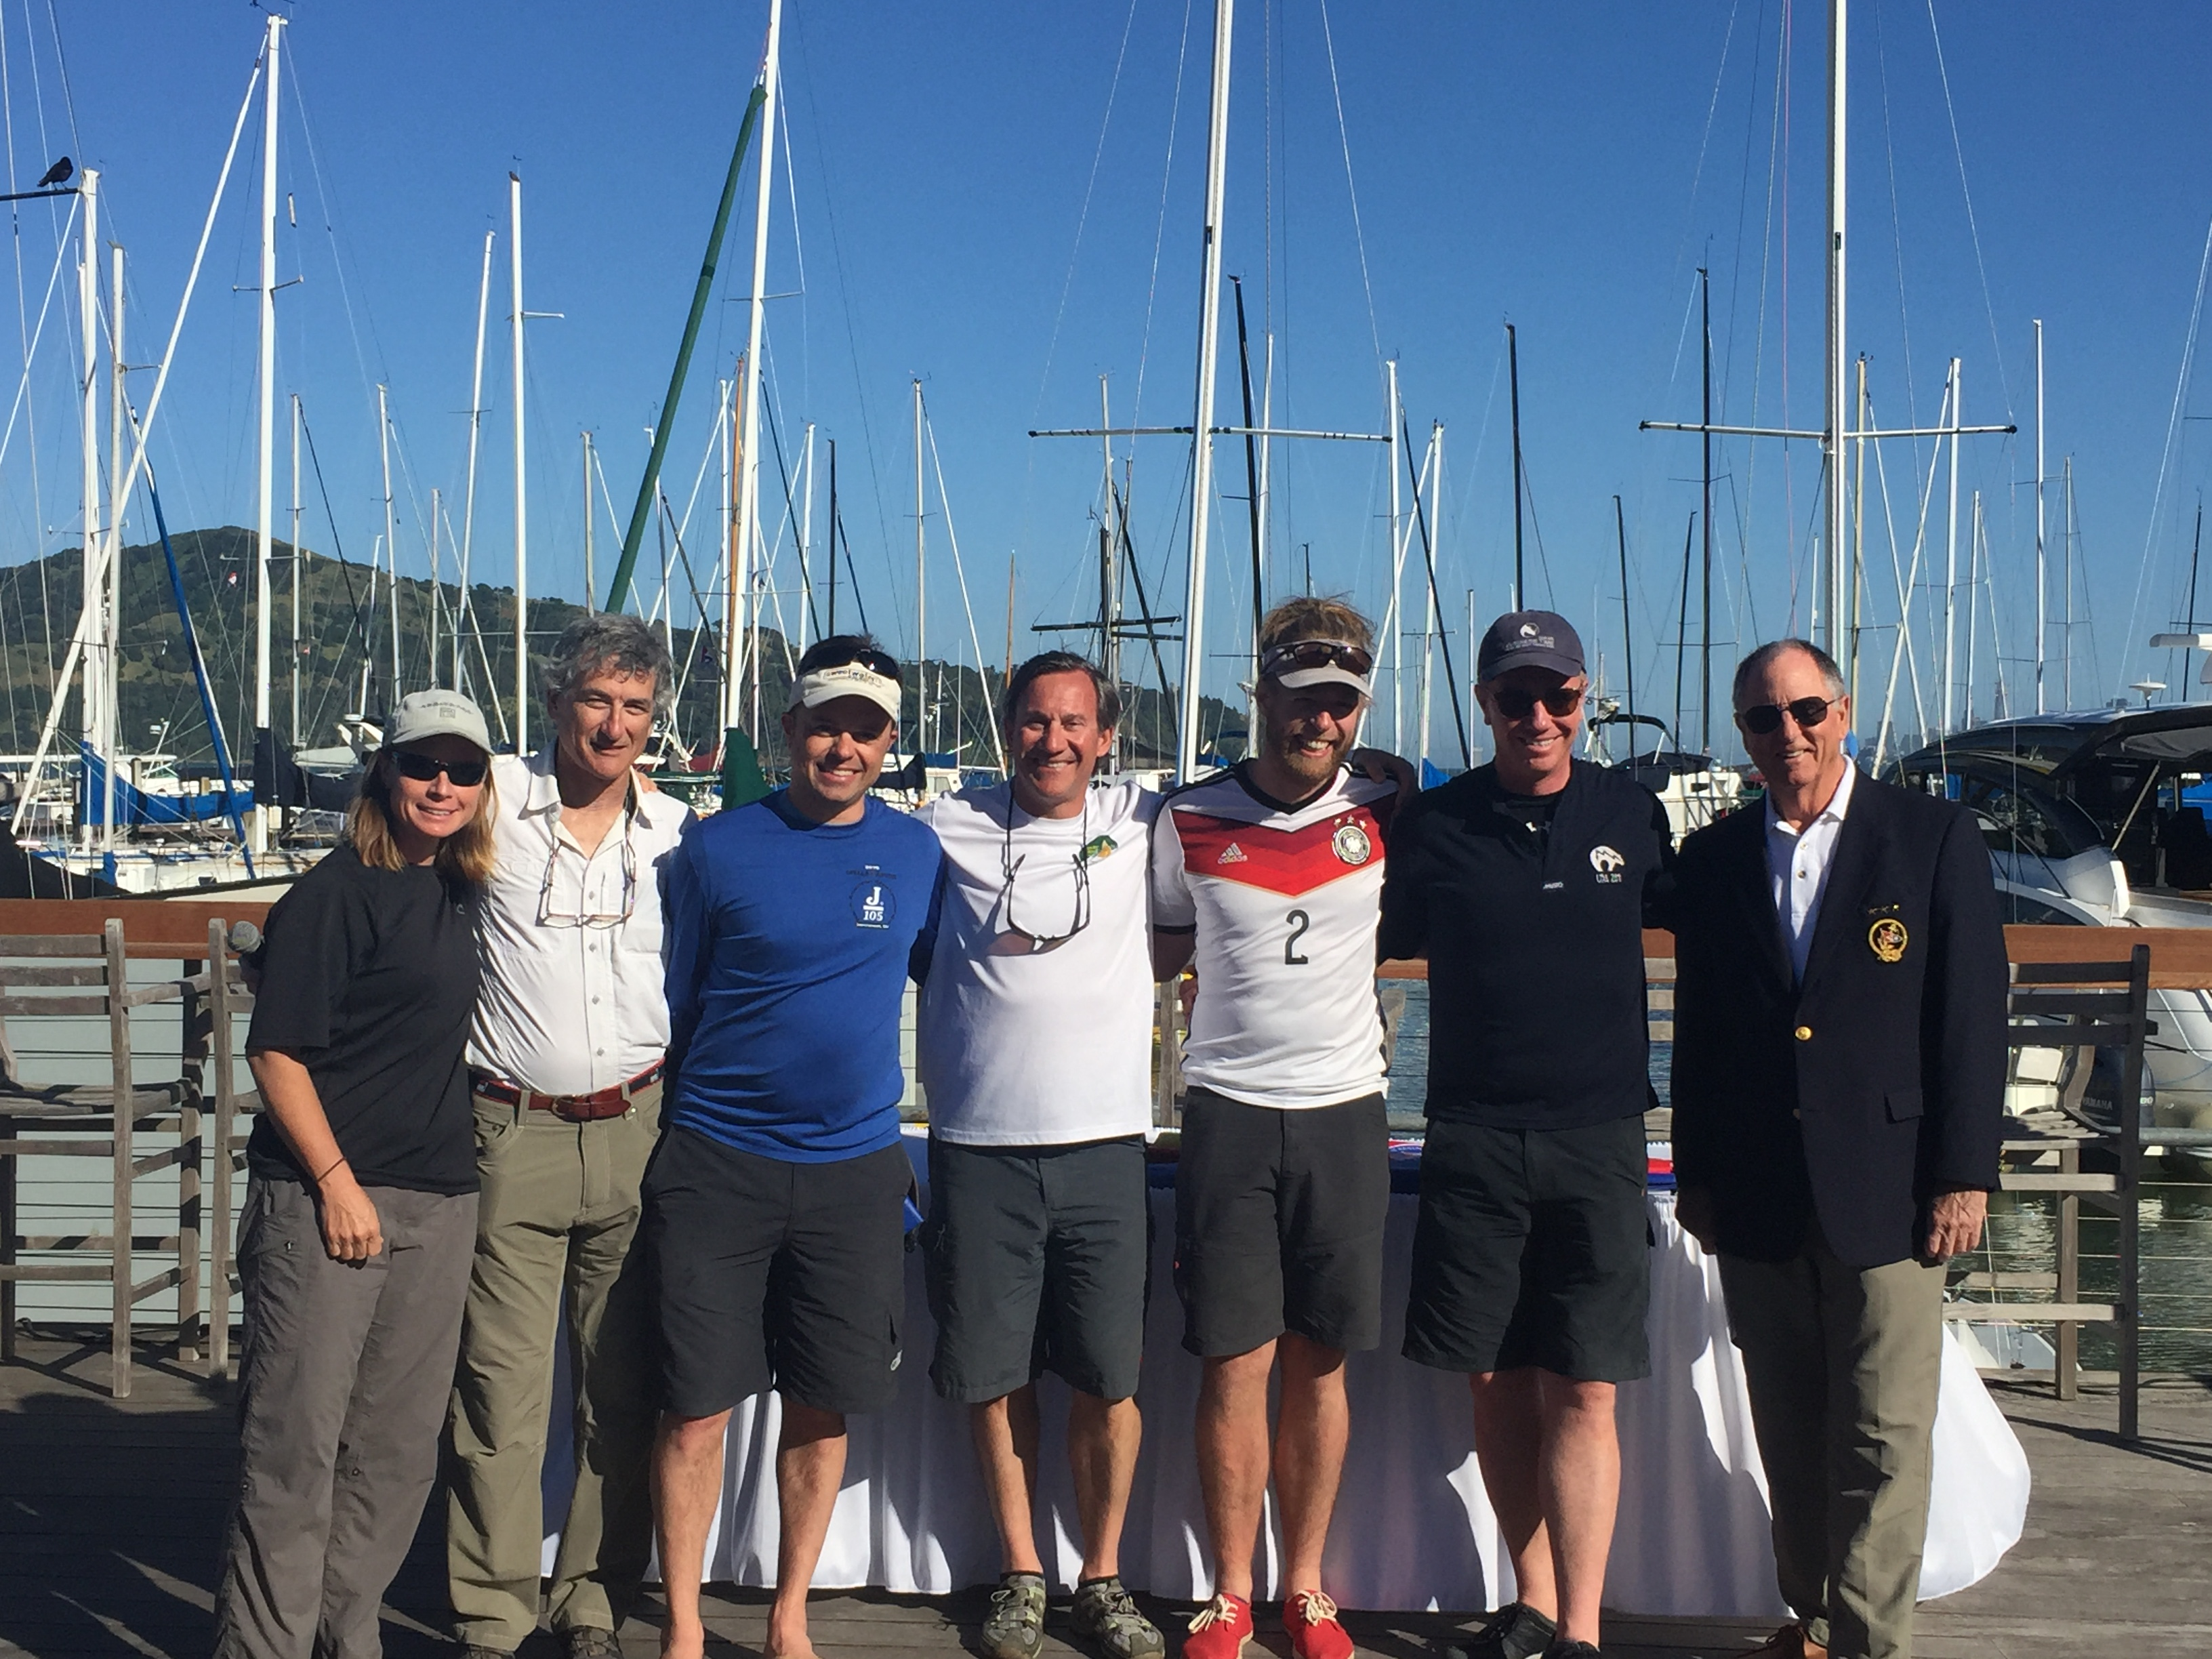 Class News J 105 Association Boat Wire Diagram 1971 Winner Bruce Stone Nicole Breault And Their Team On Arbitrage Posted Third Regatta Win Of The 2017 Sf Bay Season By Topping 21 Fleet In